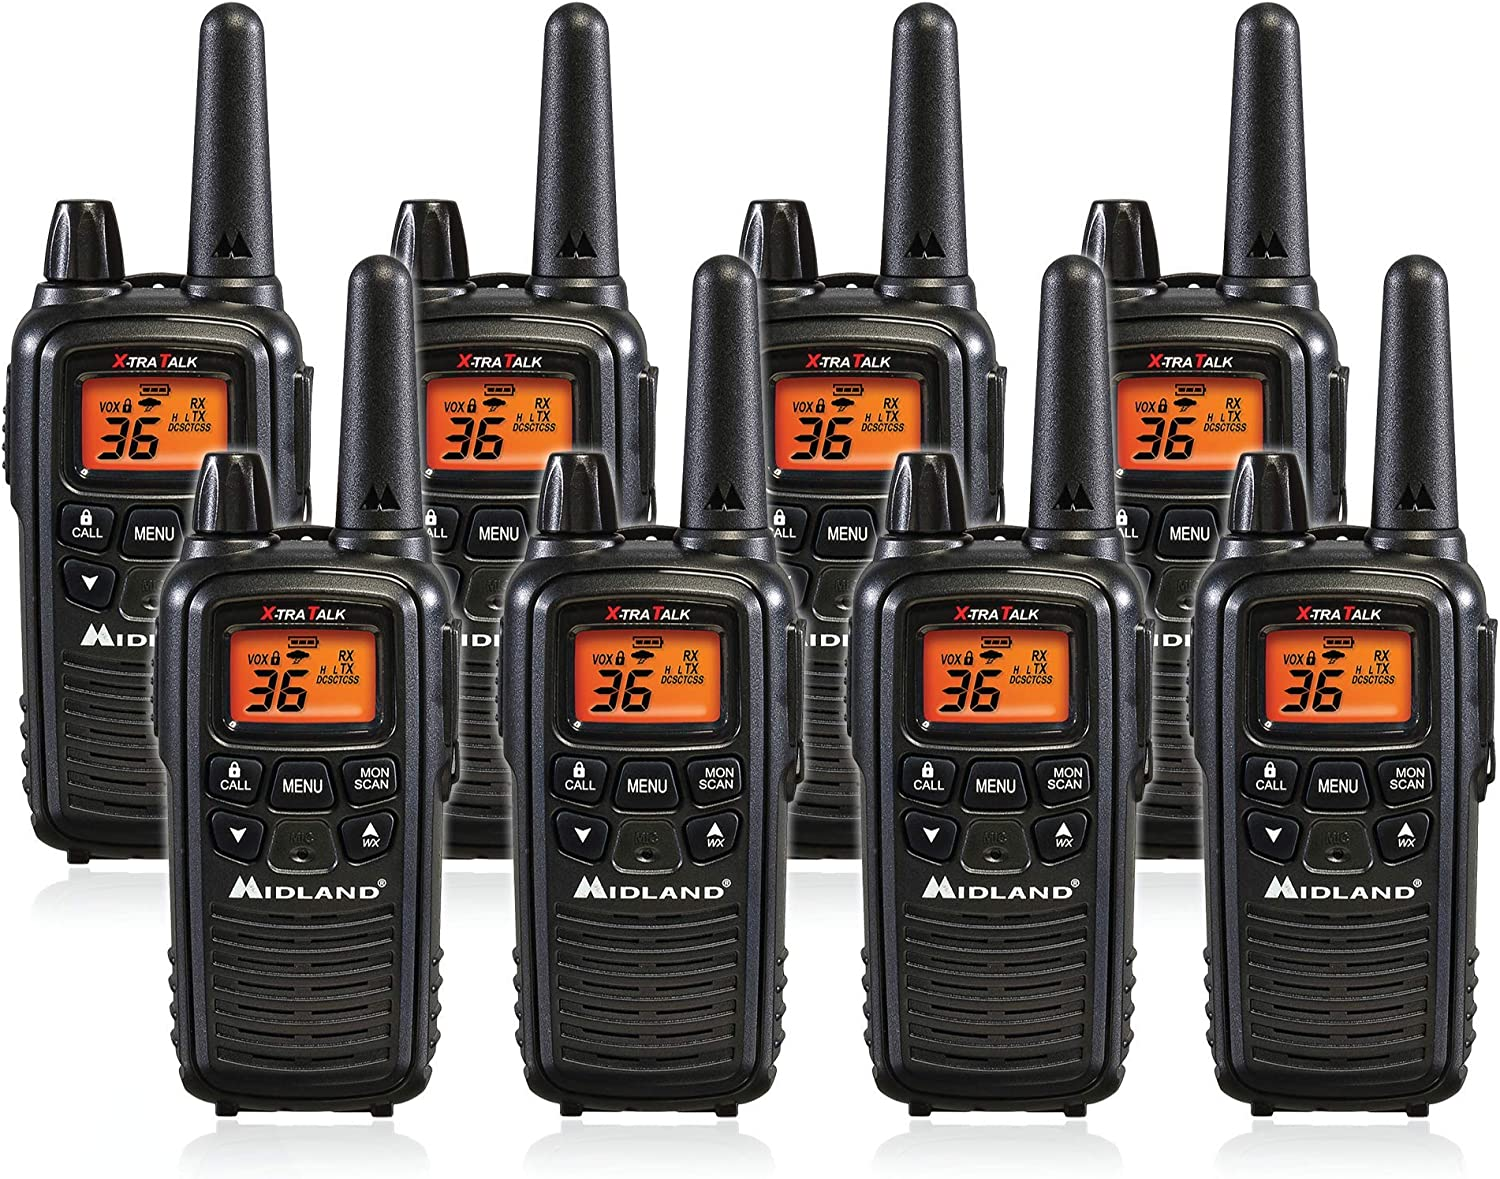 Midland LXT600VP3 36 Channel FRS Two-Way Radio - Up to 30 Mile Range Walkie Talkie - Black (8 Pack)